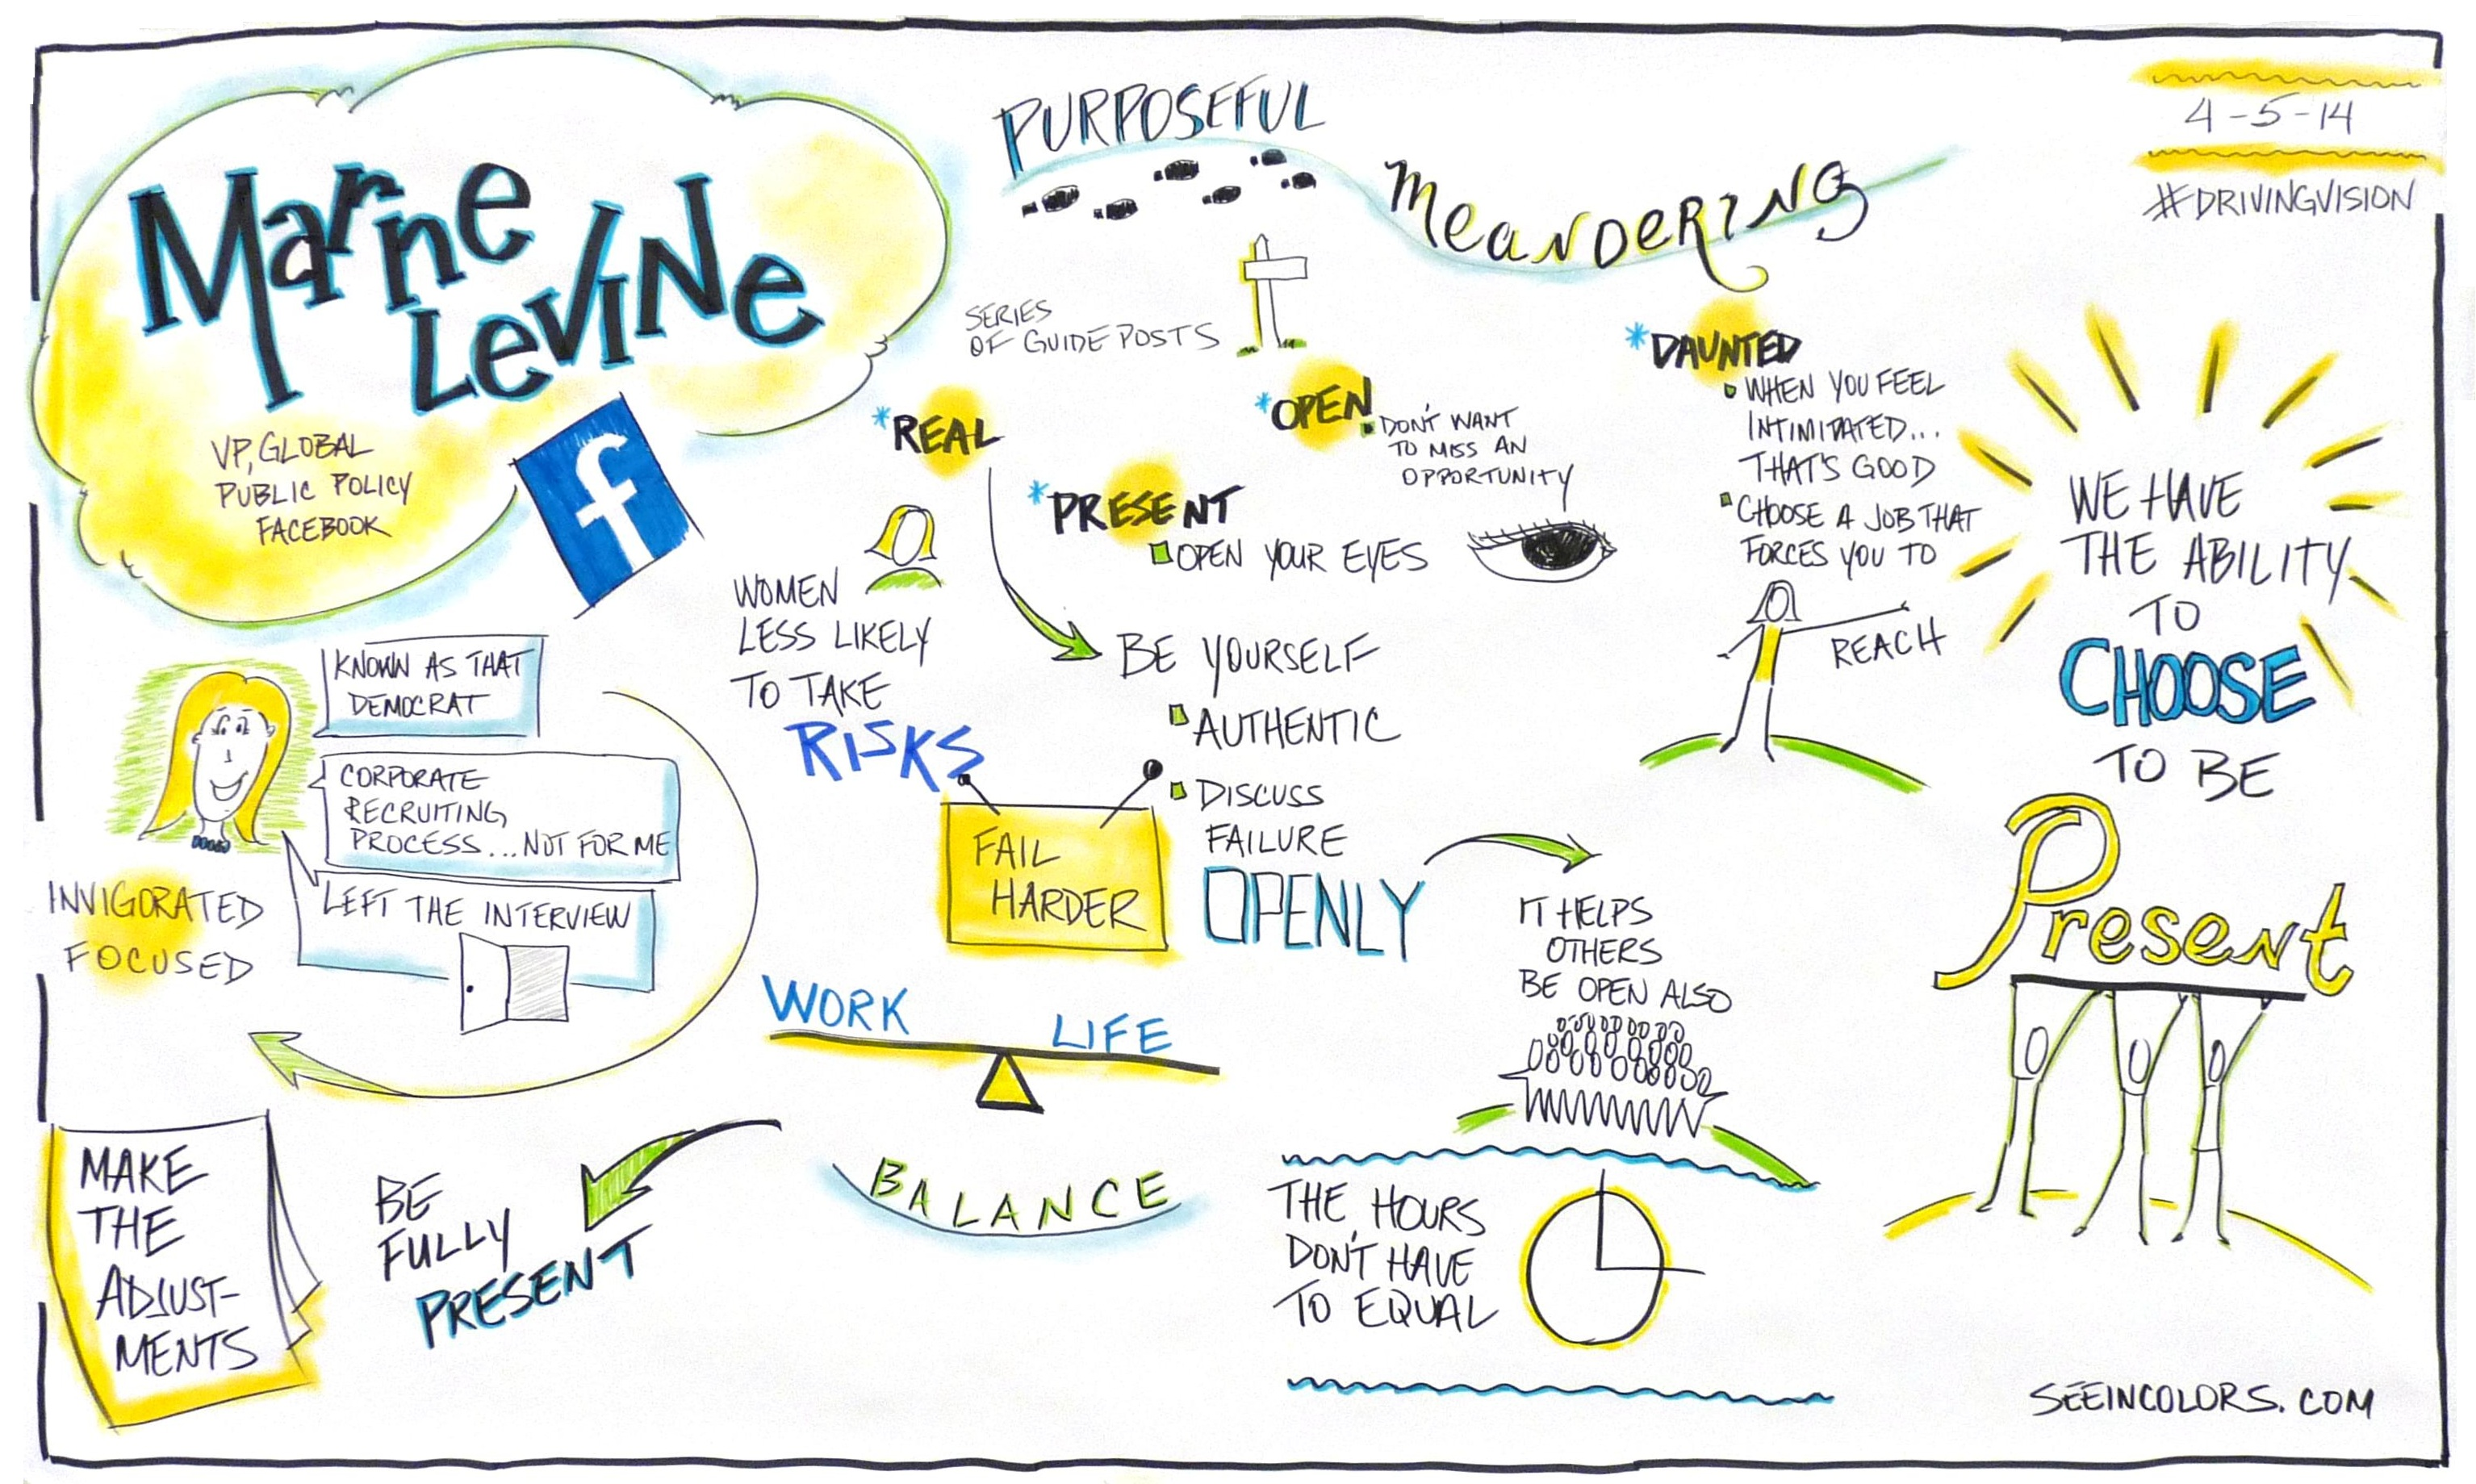 Marne Levine, Facebook, Graphic Recording, #GWWIB, GW University, Washington DC